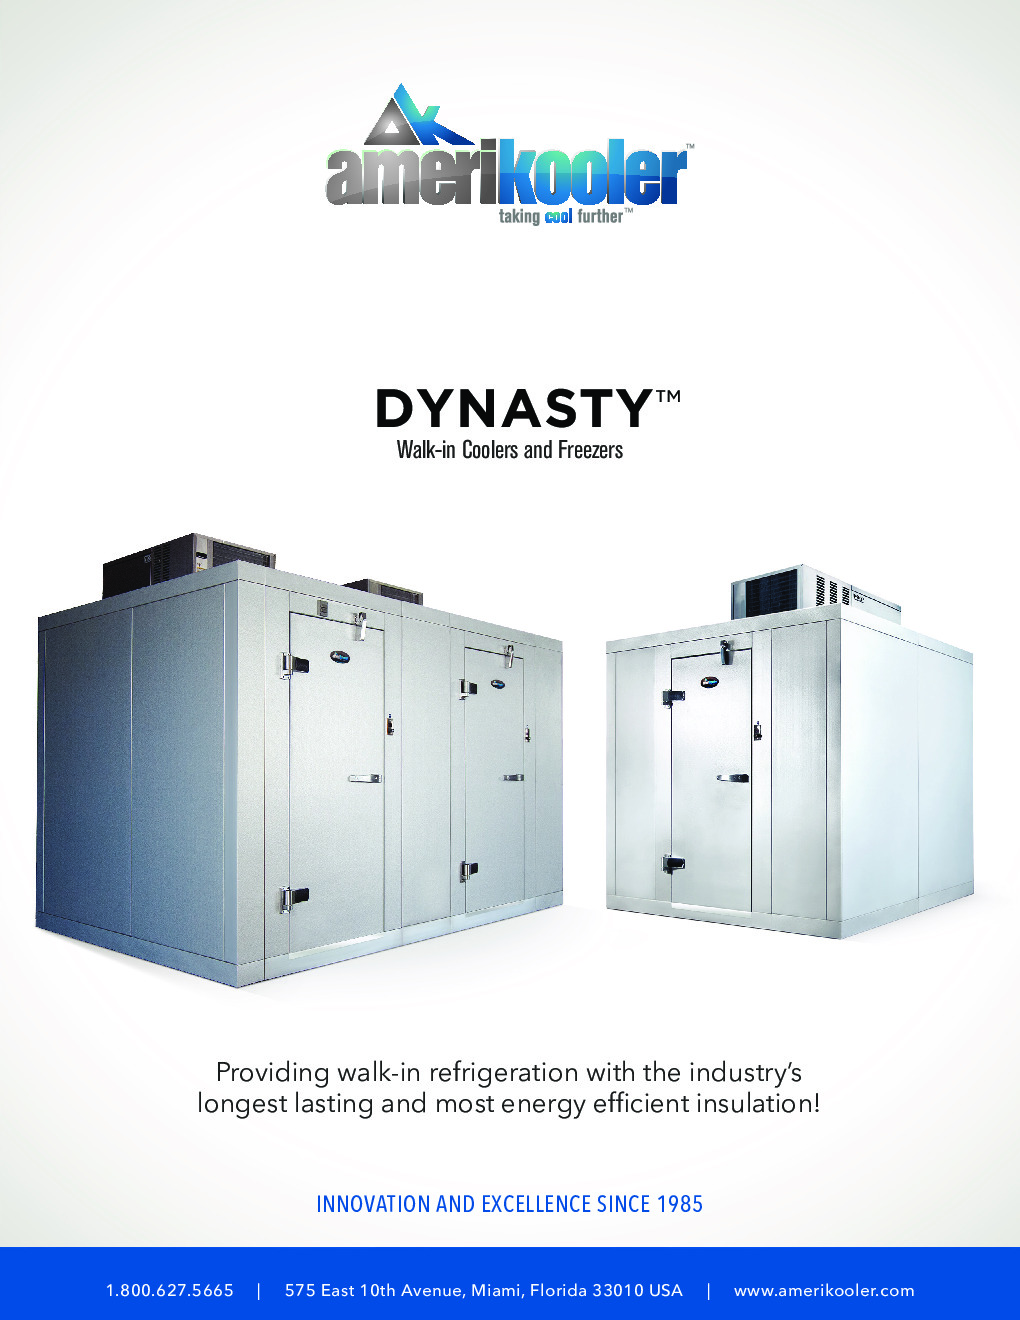 AmeriKooler DW101377N-5/8-RM 10' X 13' Walk-In Cooler, 8' L Cooler without Floor and 5' L Freezer, Remote